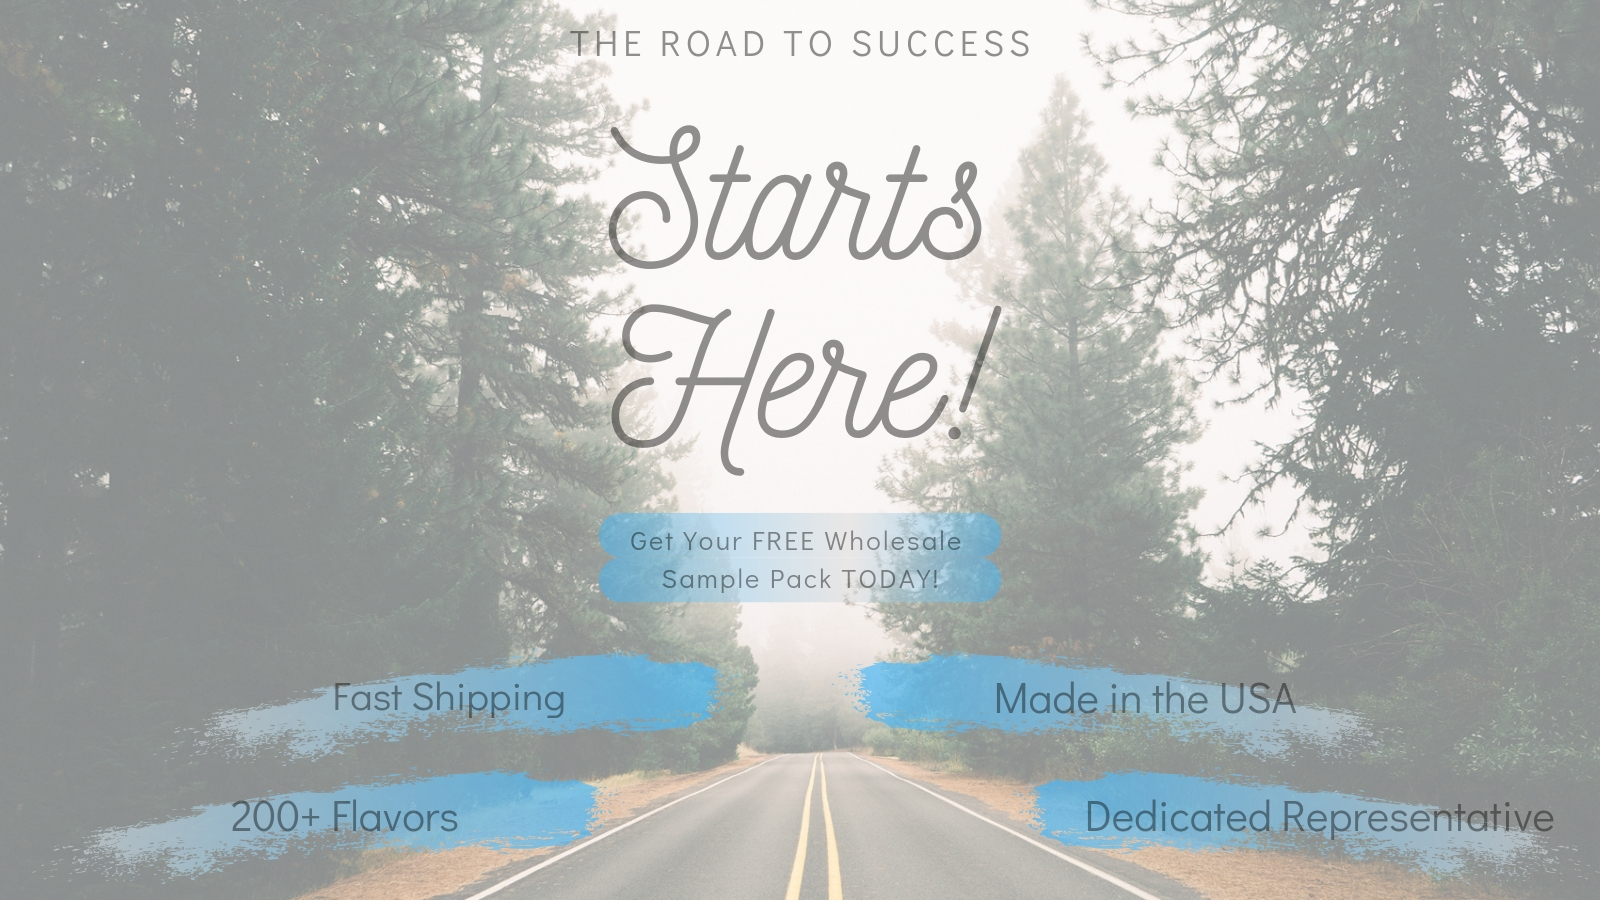 Road to success with Central Vapors Wholesale ejuice